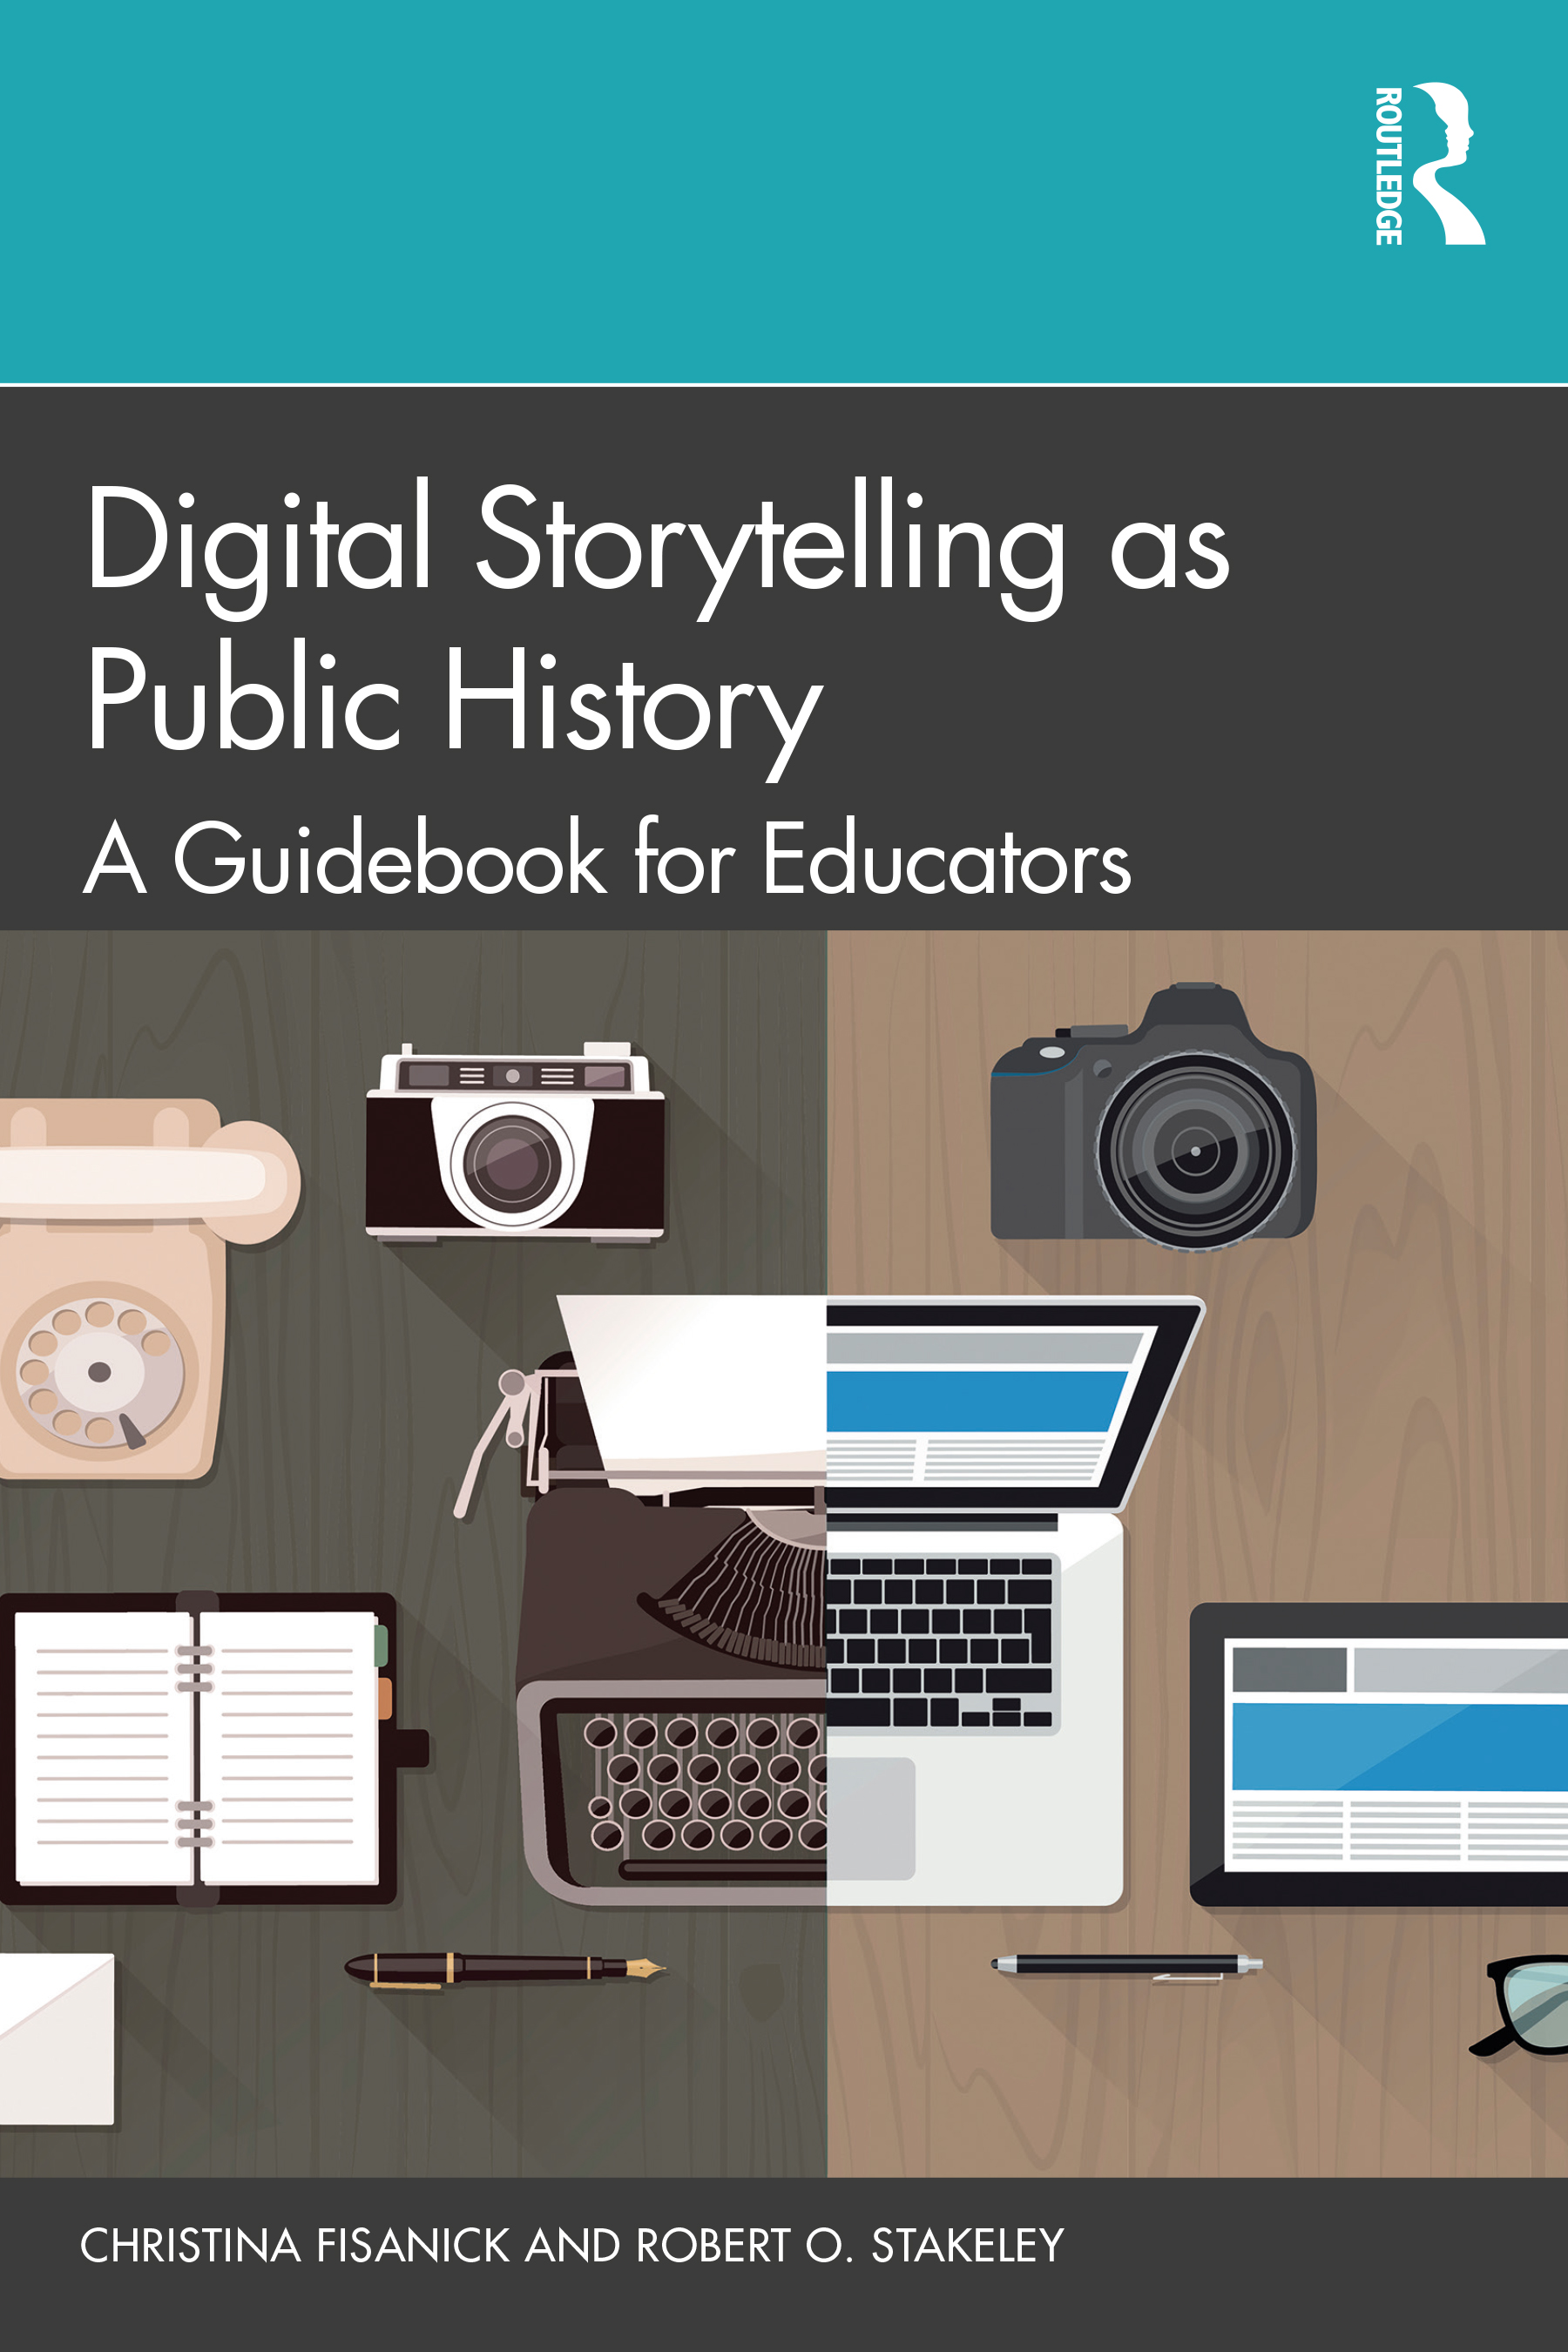 Digital Storytelling Software and Equipment